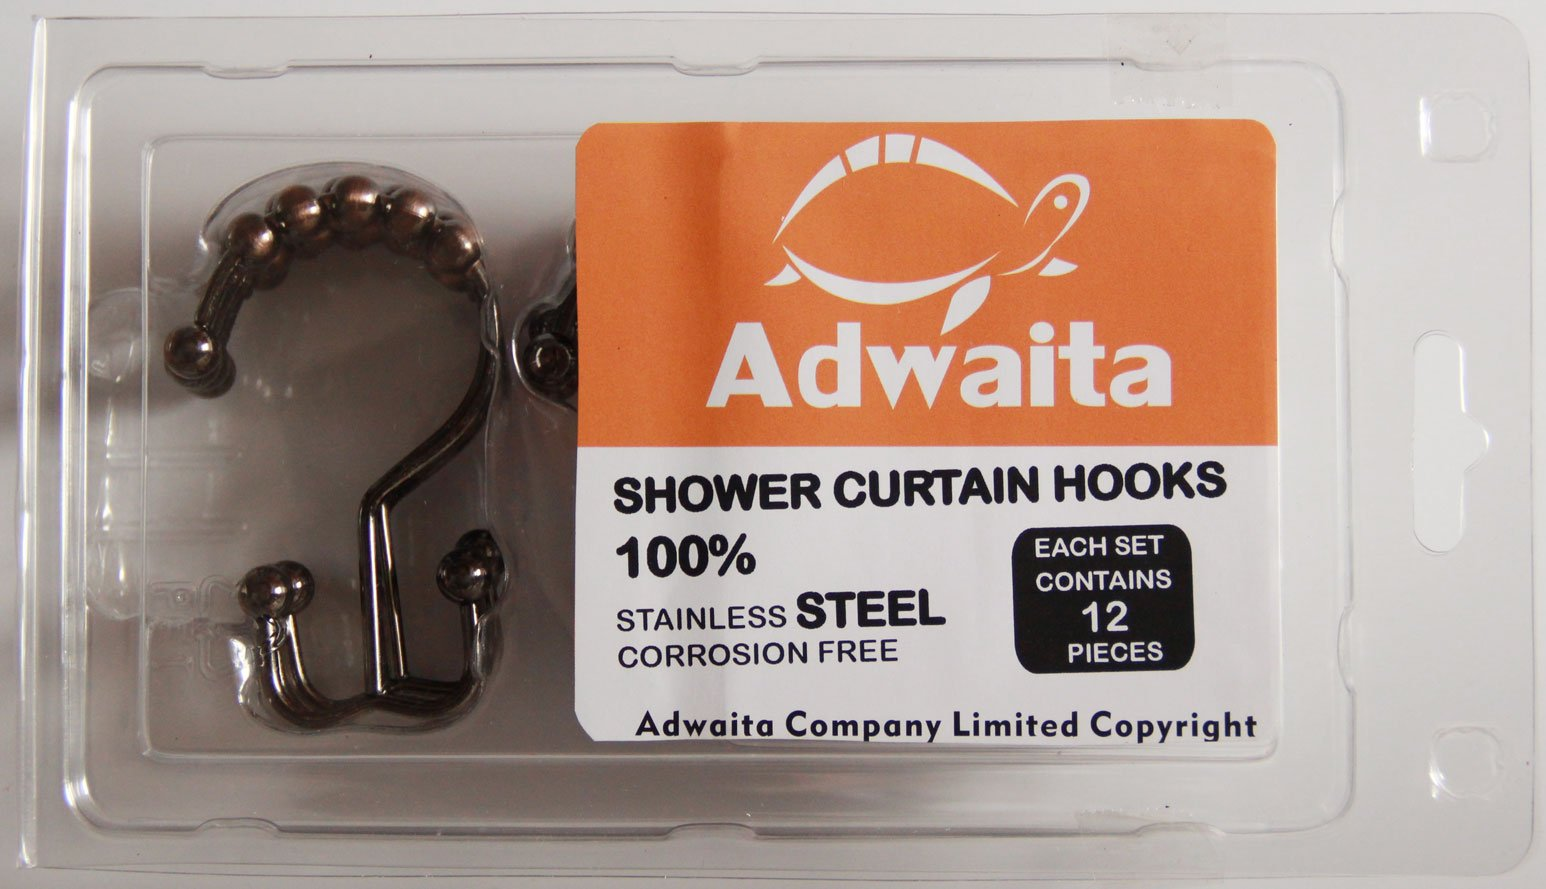 Adwaita Double Shower Hooks-Bathroom Decorative Rustproof Metal Double Glide Shower Curtain Hooks and Ring with 100% Stainless Steel, Oil Rubbed Bronze, Set of 12